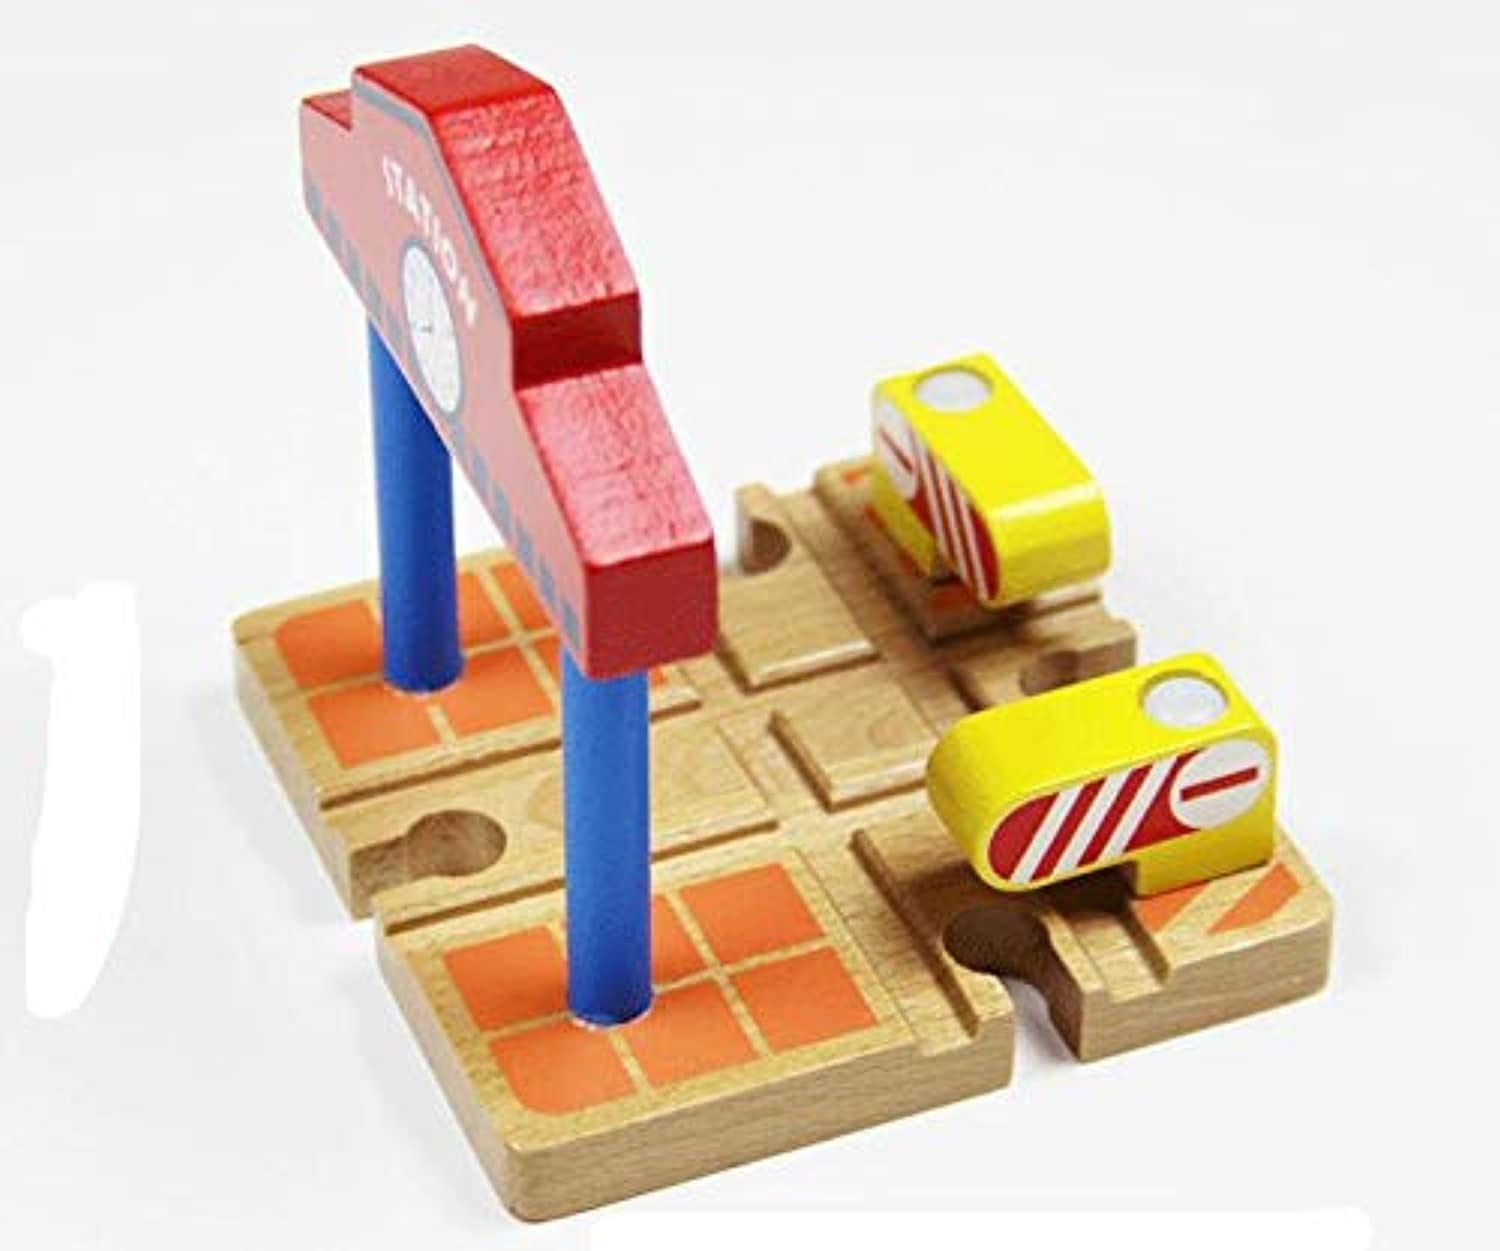 Generic Cross Station Track with Clock Train Slot Railway Accessories Toy for Kids EDWONE Cross Station